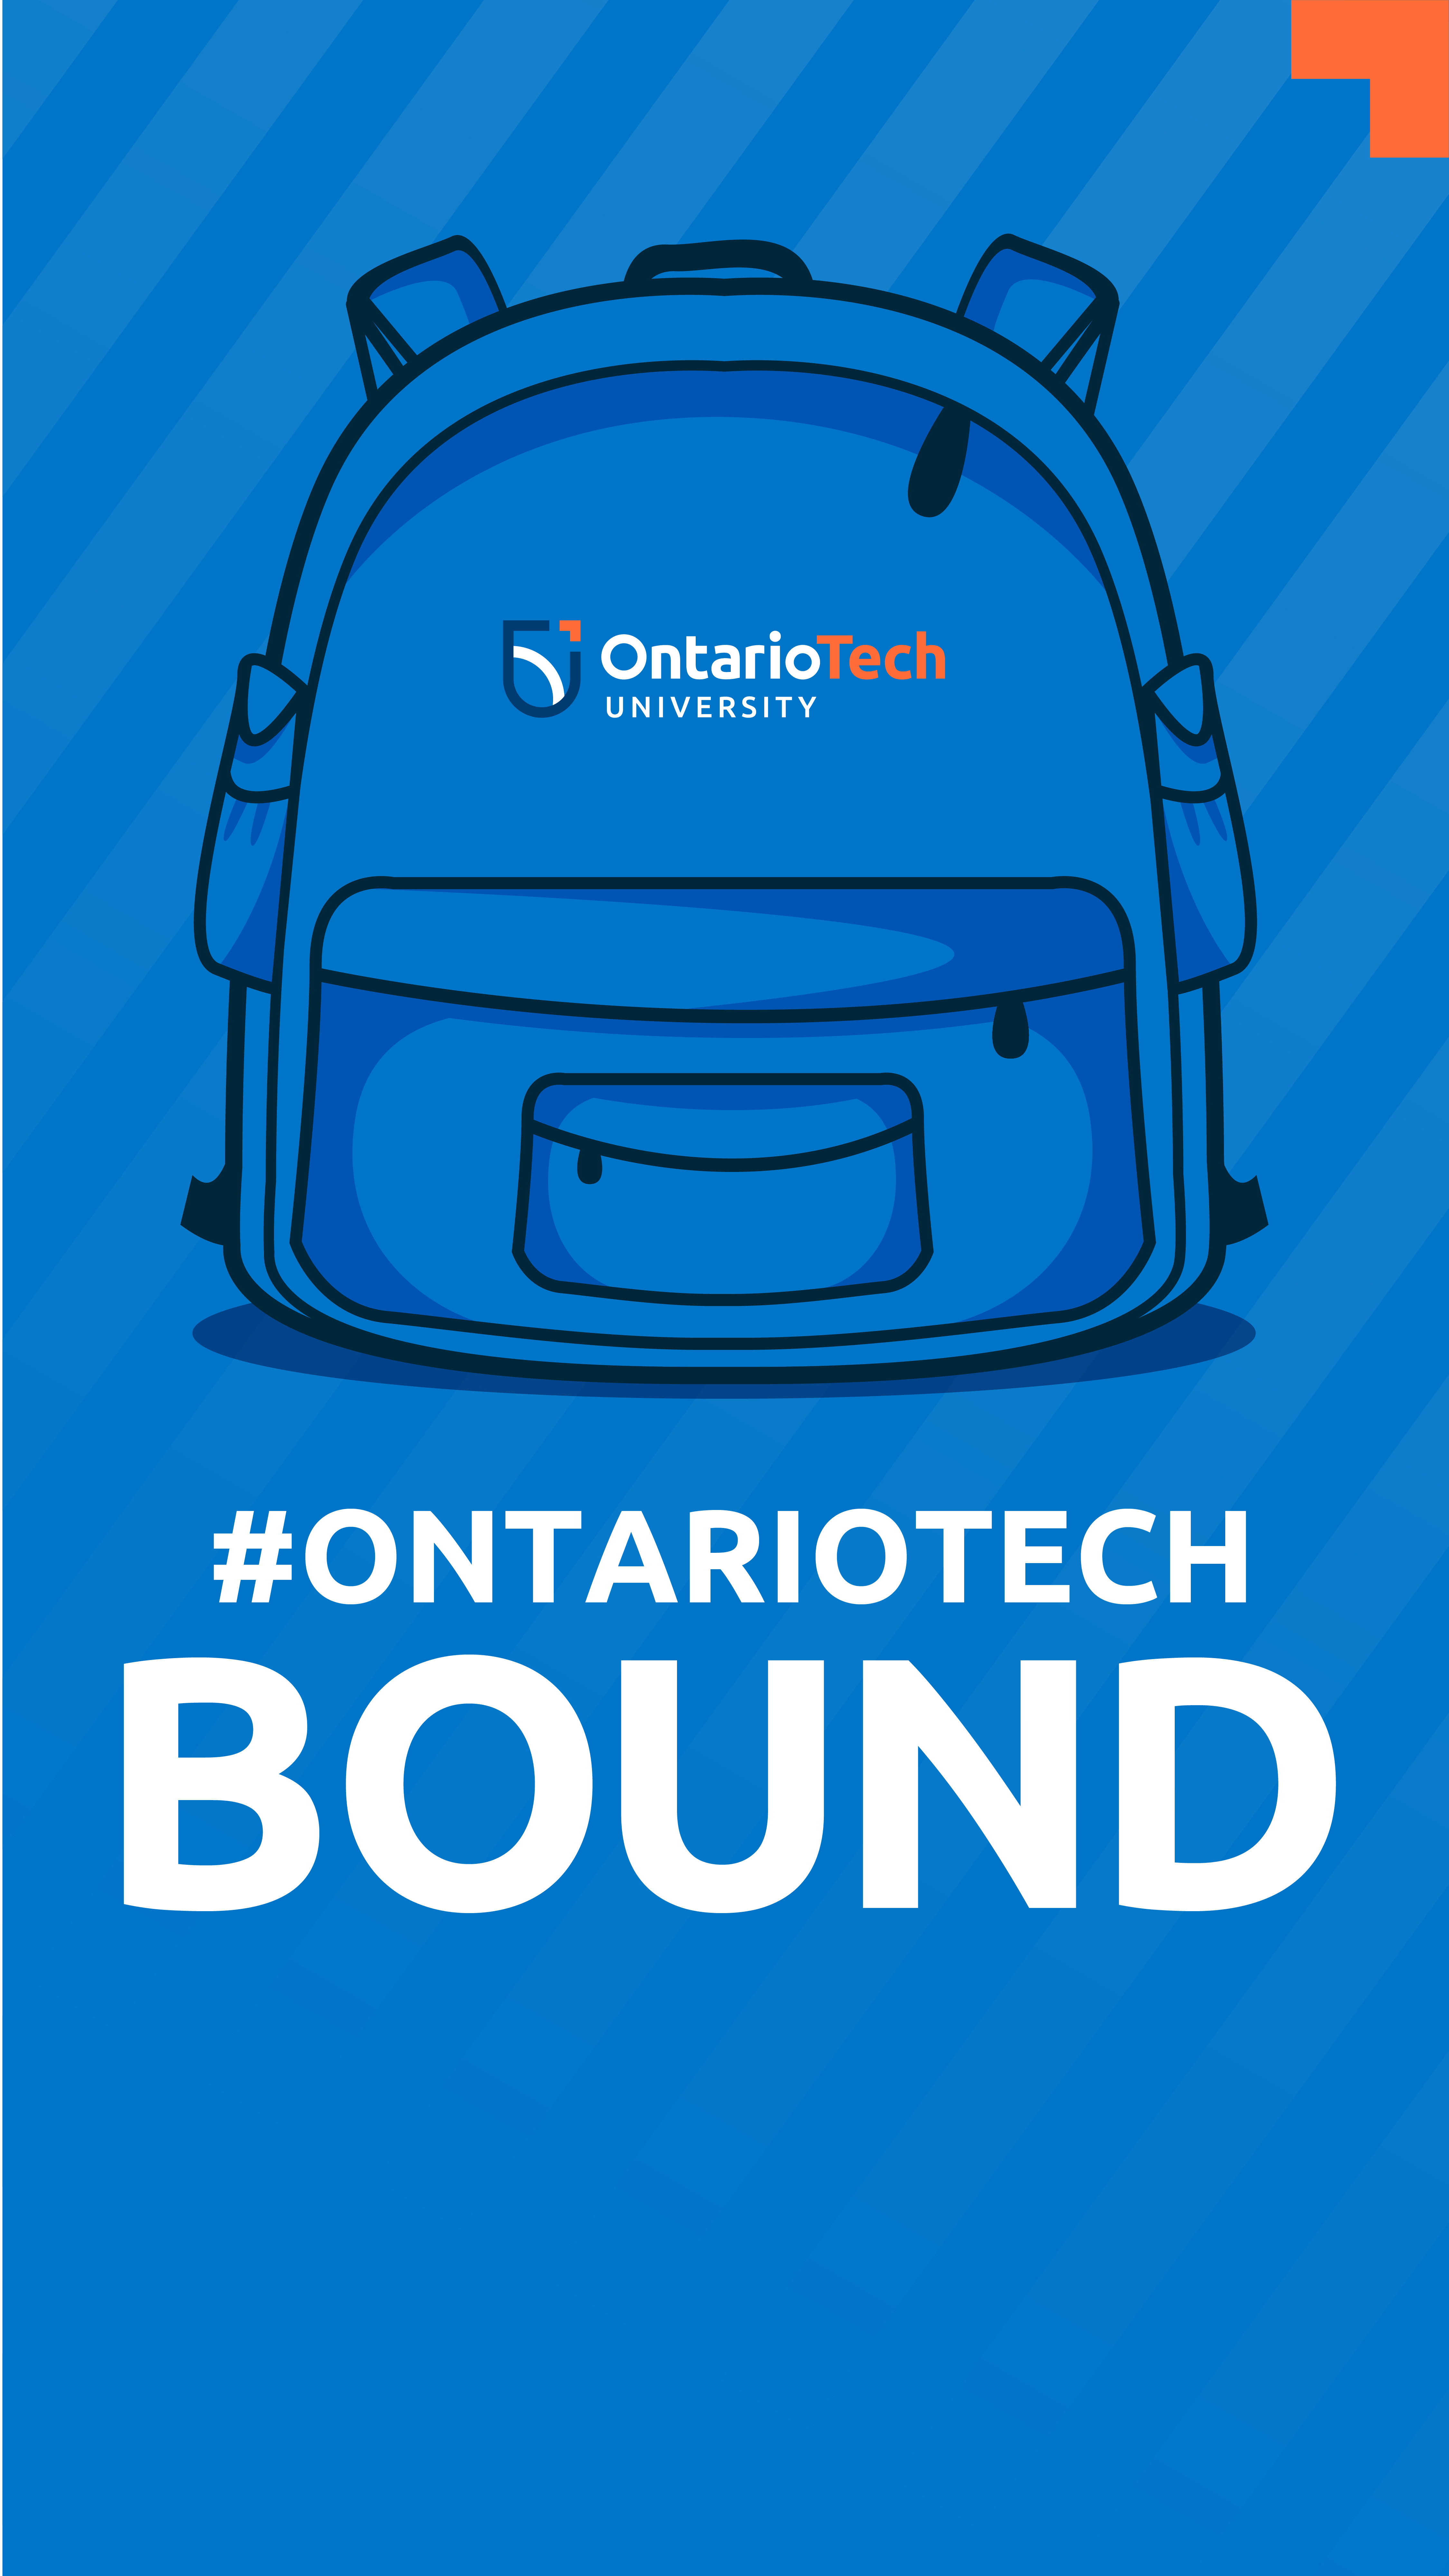 Ontario Tech Bound phone wallpaper